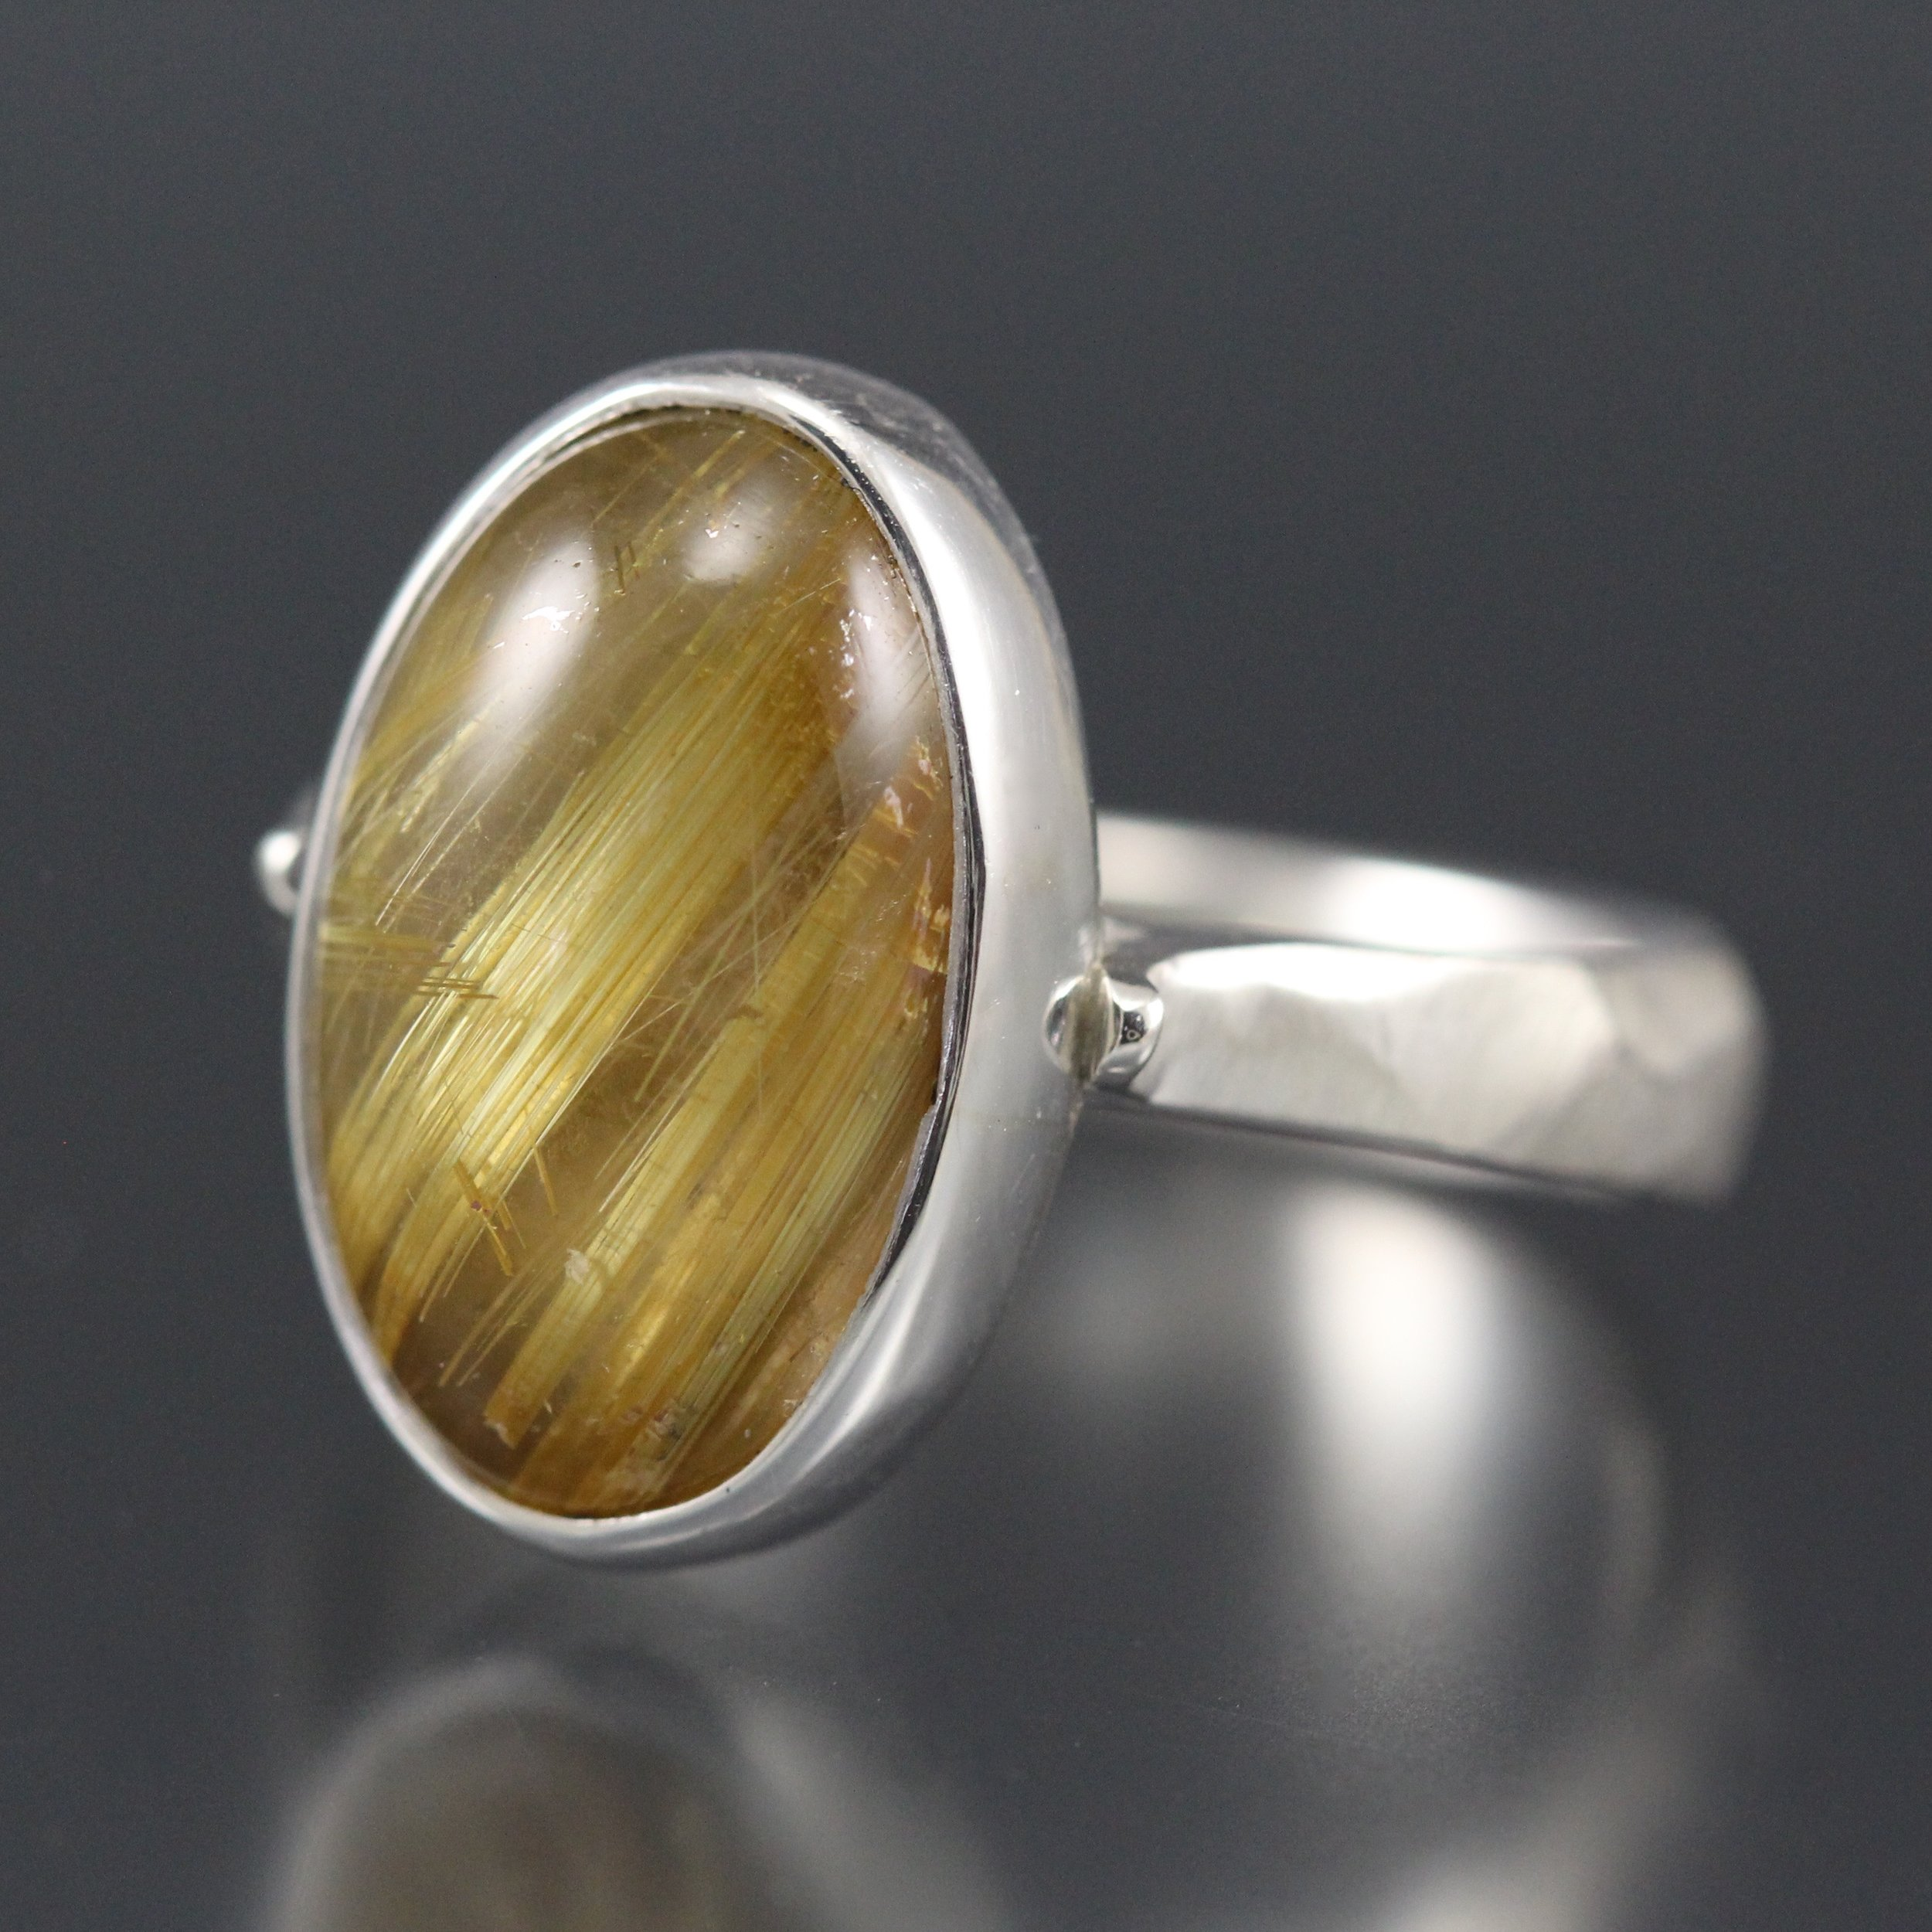 Golden rutile quartz and sterling silver ring